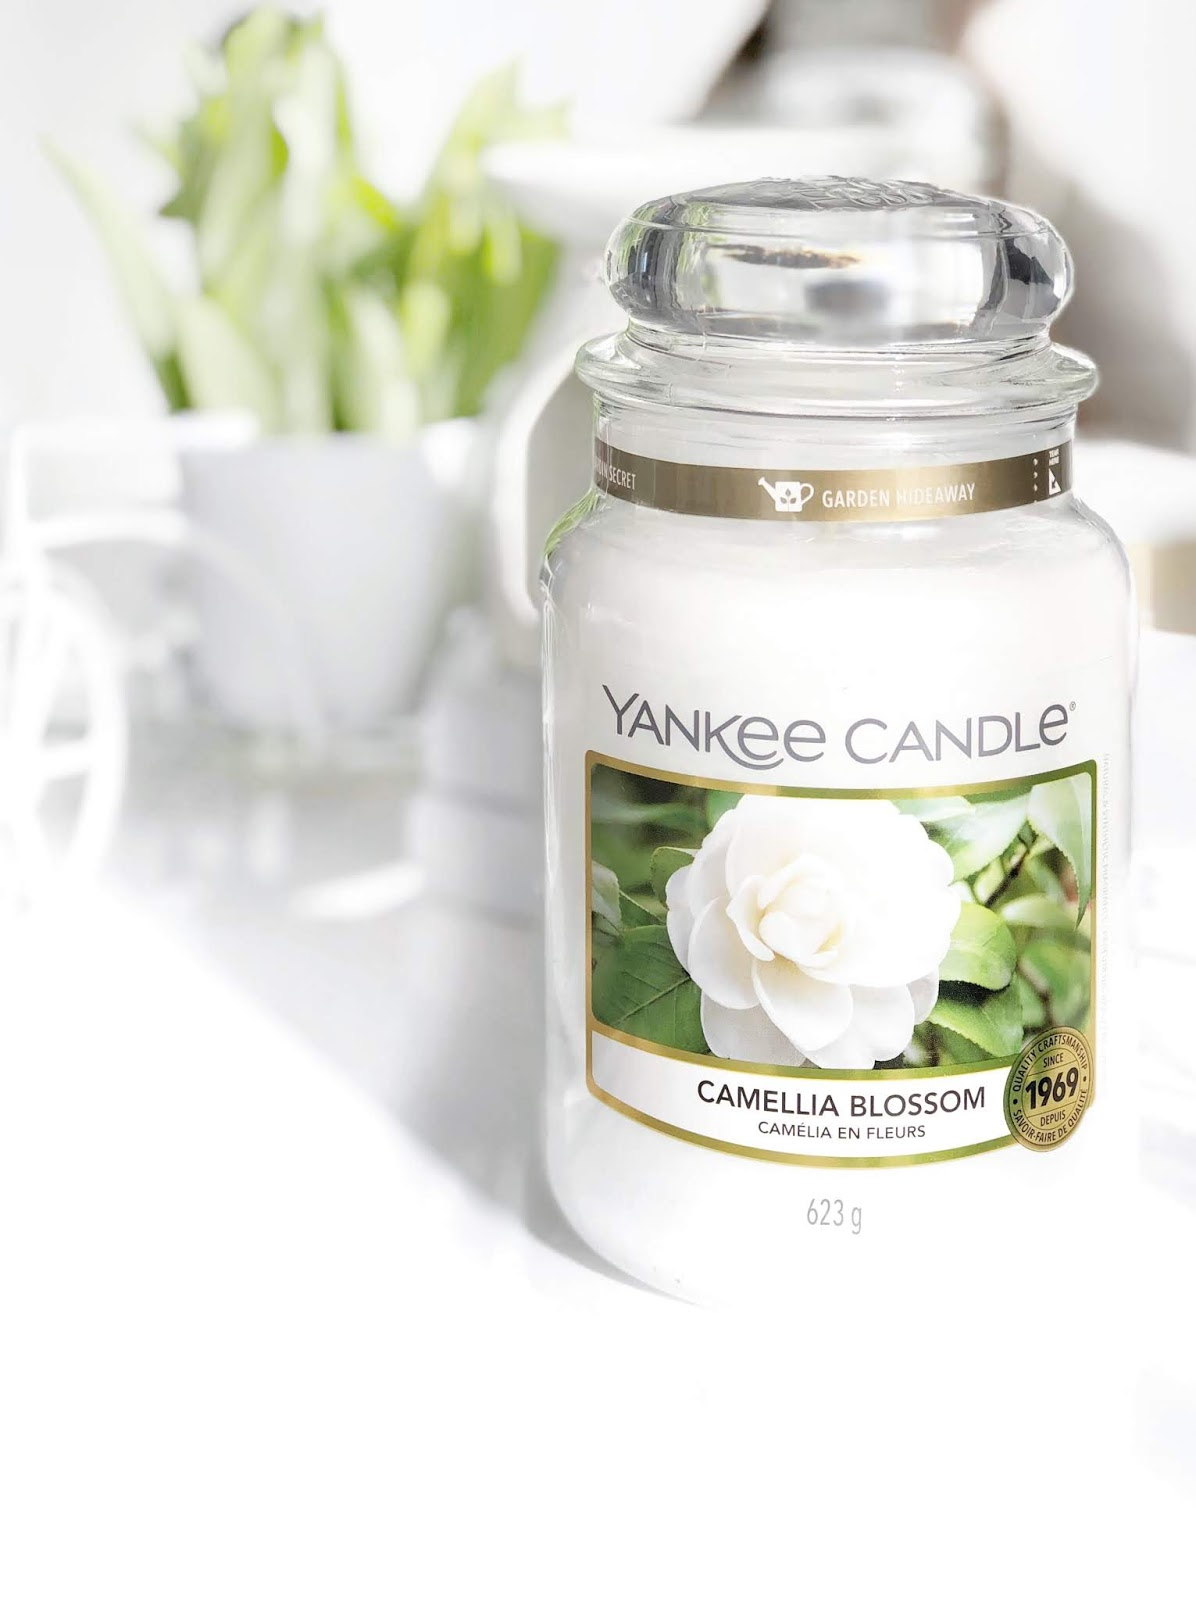 Camellia-Blossom-Yankee-Candle